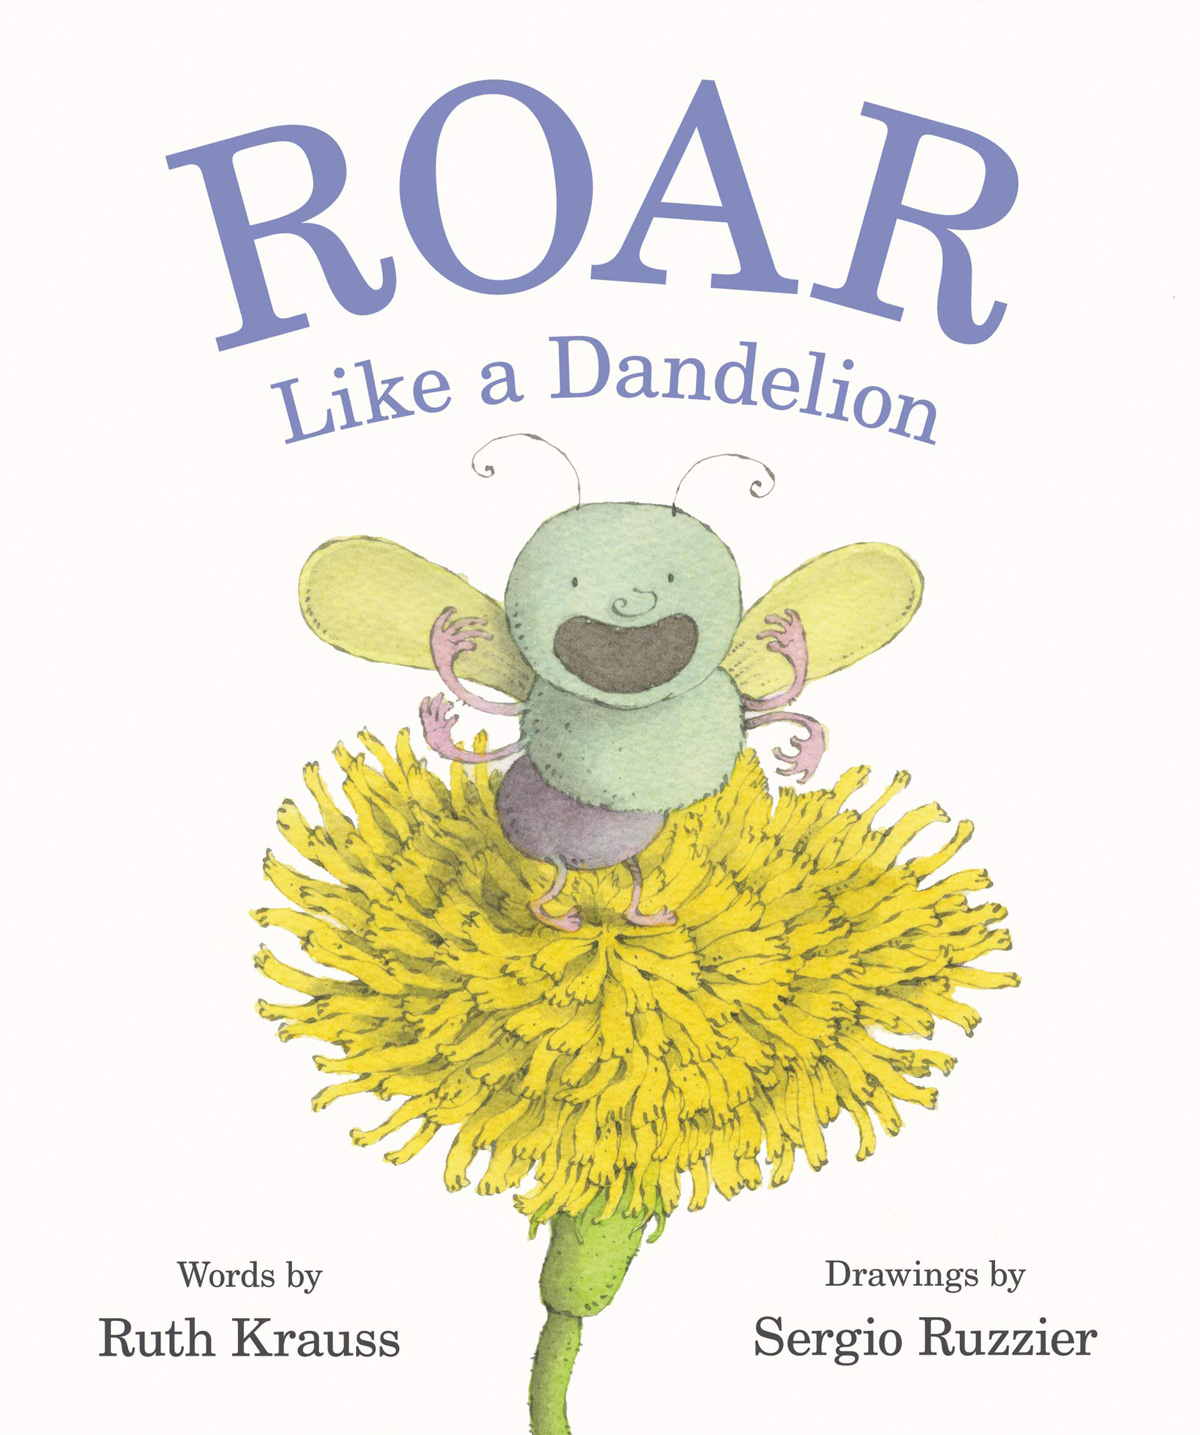 Roar Like a Dandelion: Beloved Children's Book Author and Poet Ruth Krauss's Lost Alphabet of Joy, Illustrated